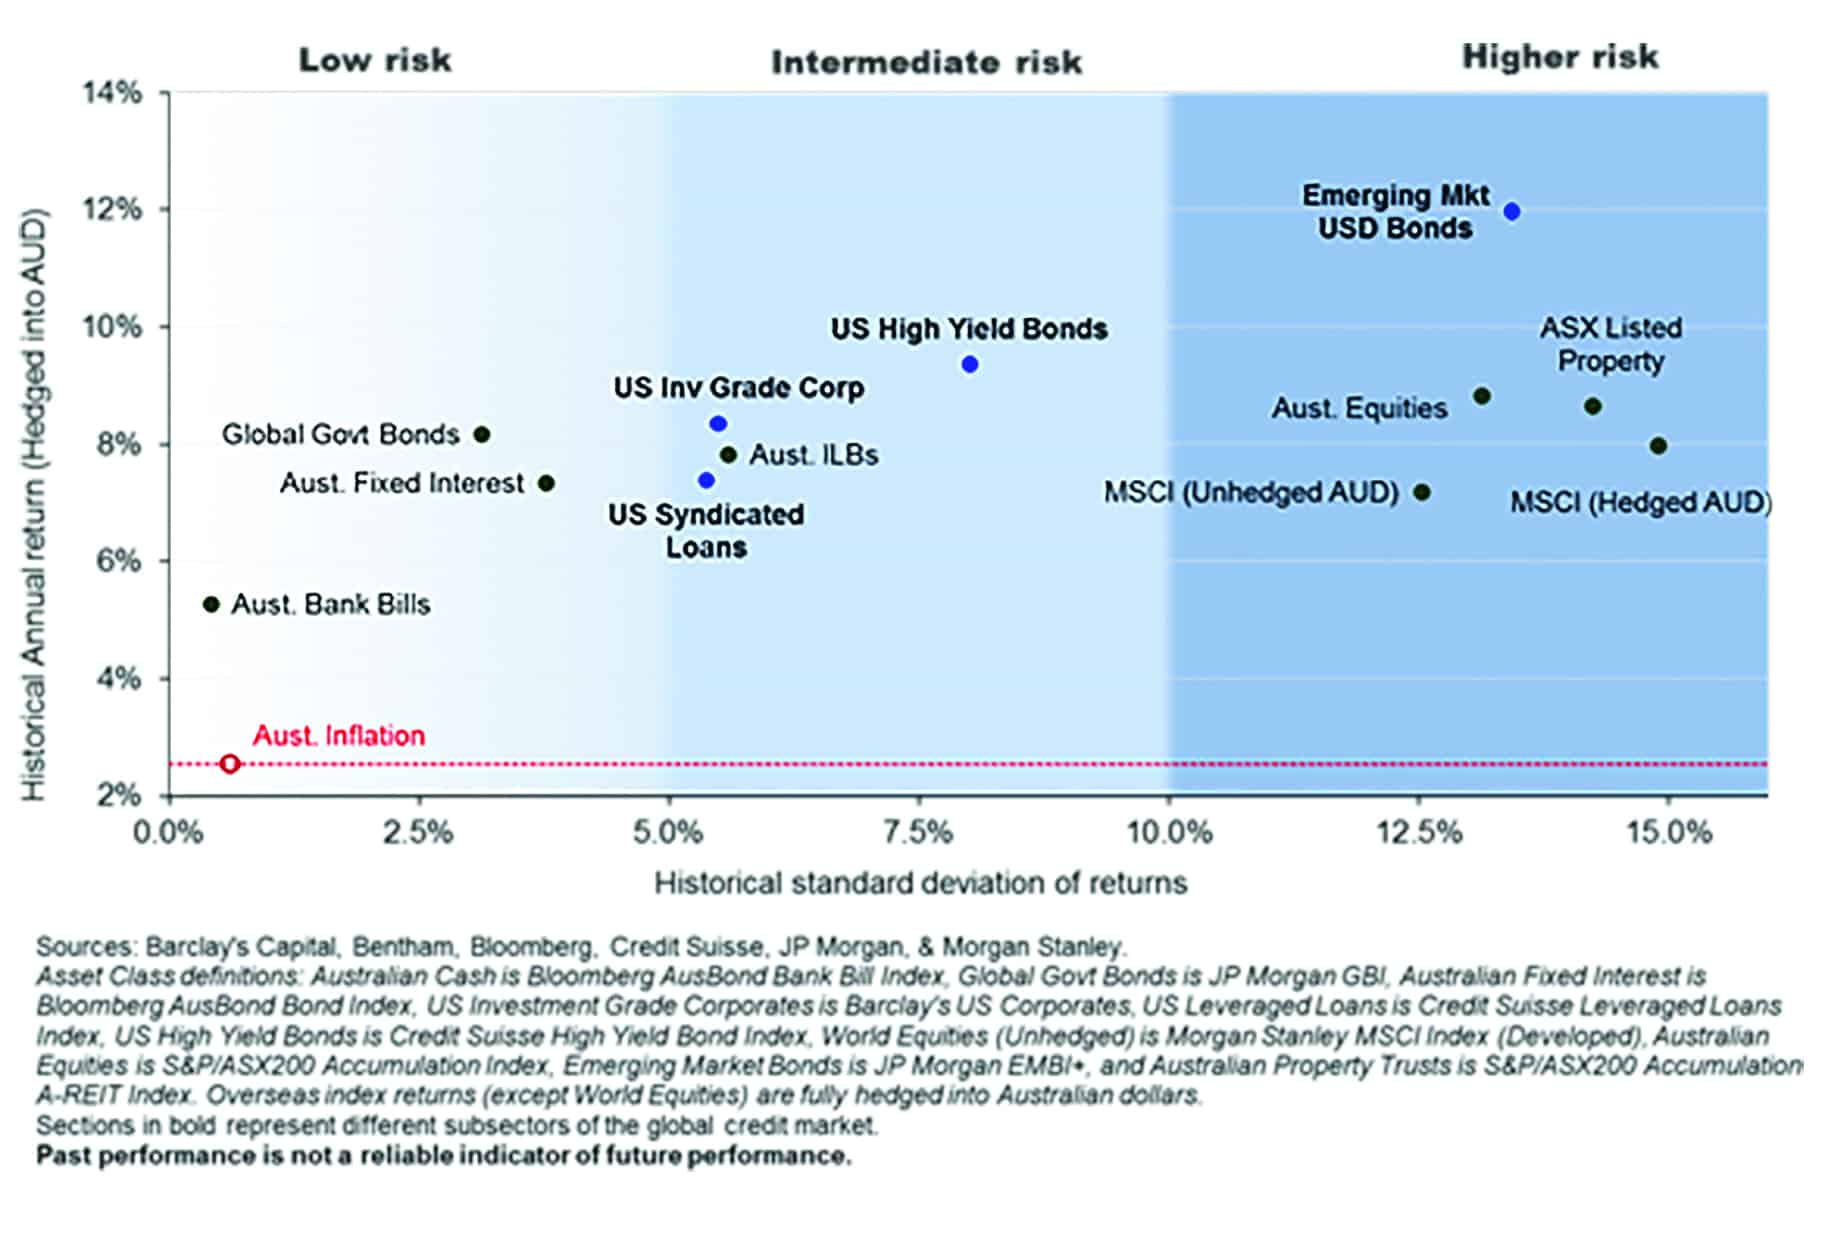 Historical Annualised Returns vs. Historical Risk - Long-term History